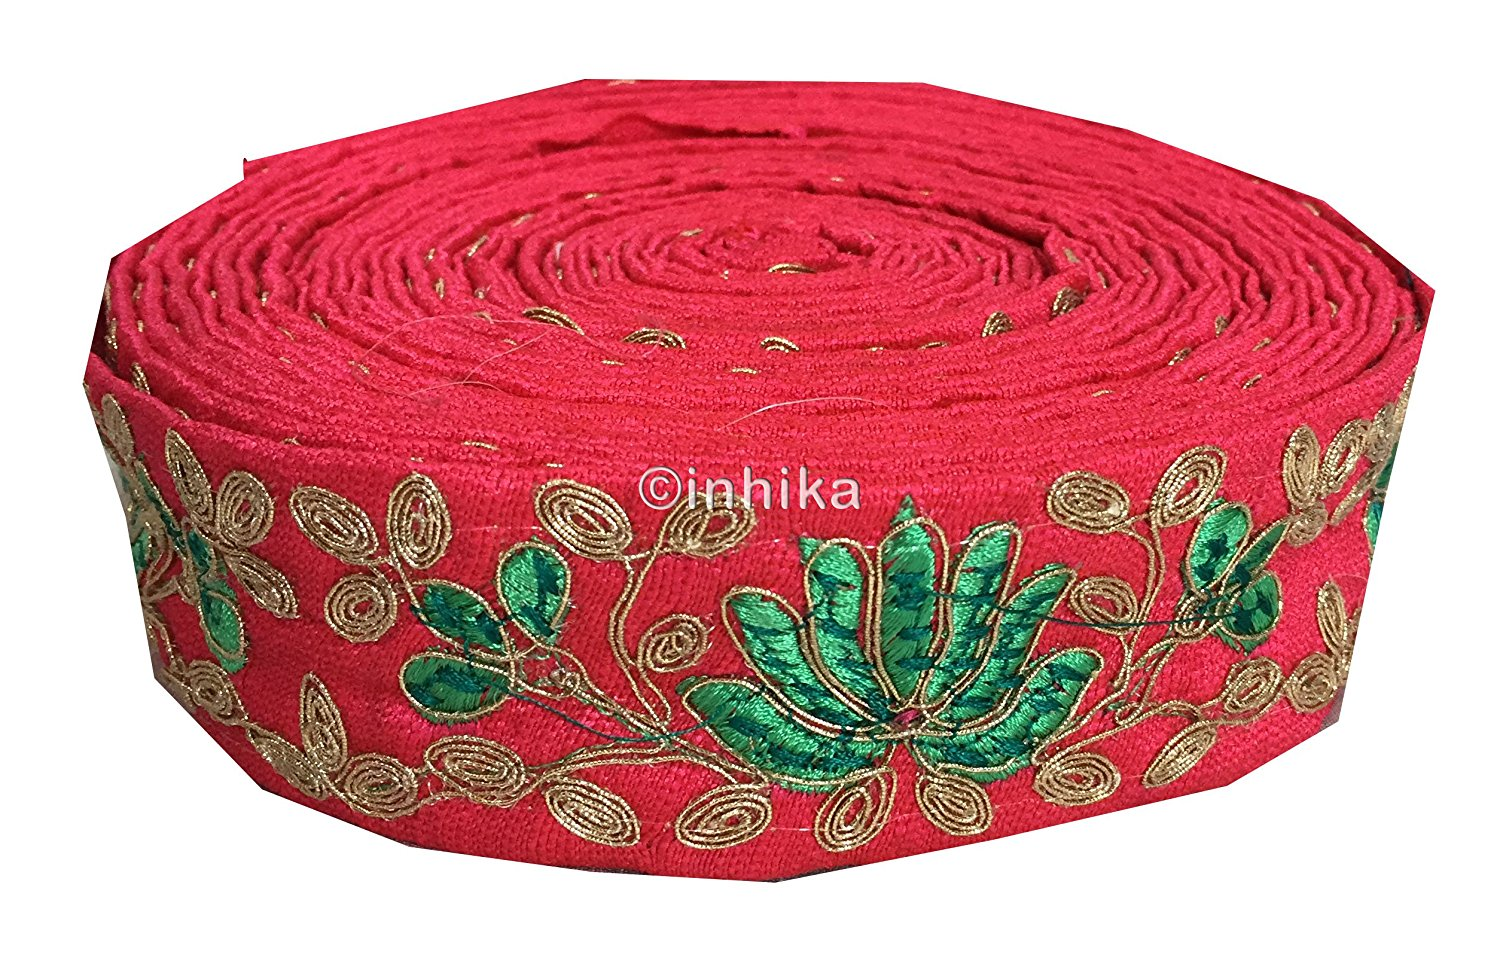 lace trim fabric trims and accessories used in garment industry Pink, Embroidery, 2 Inch Wide material Cotton Mix